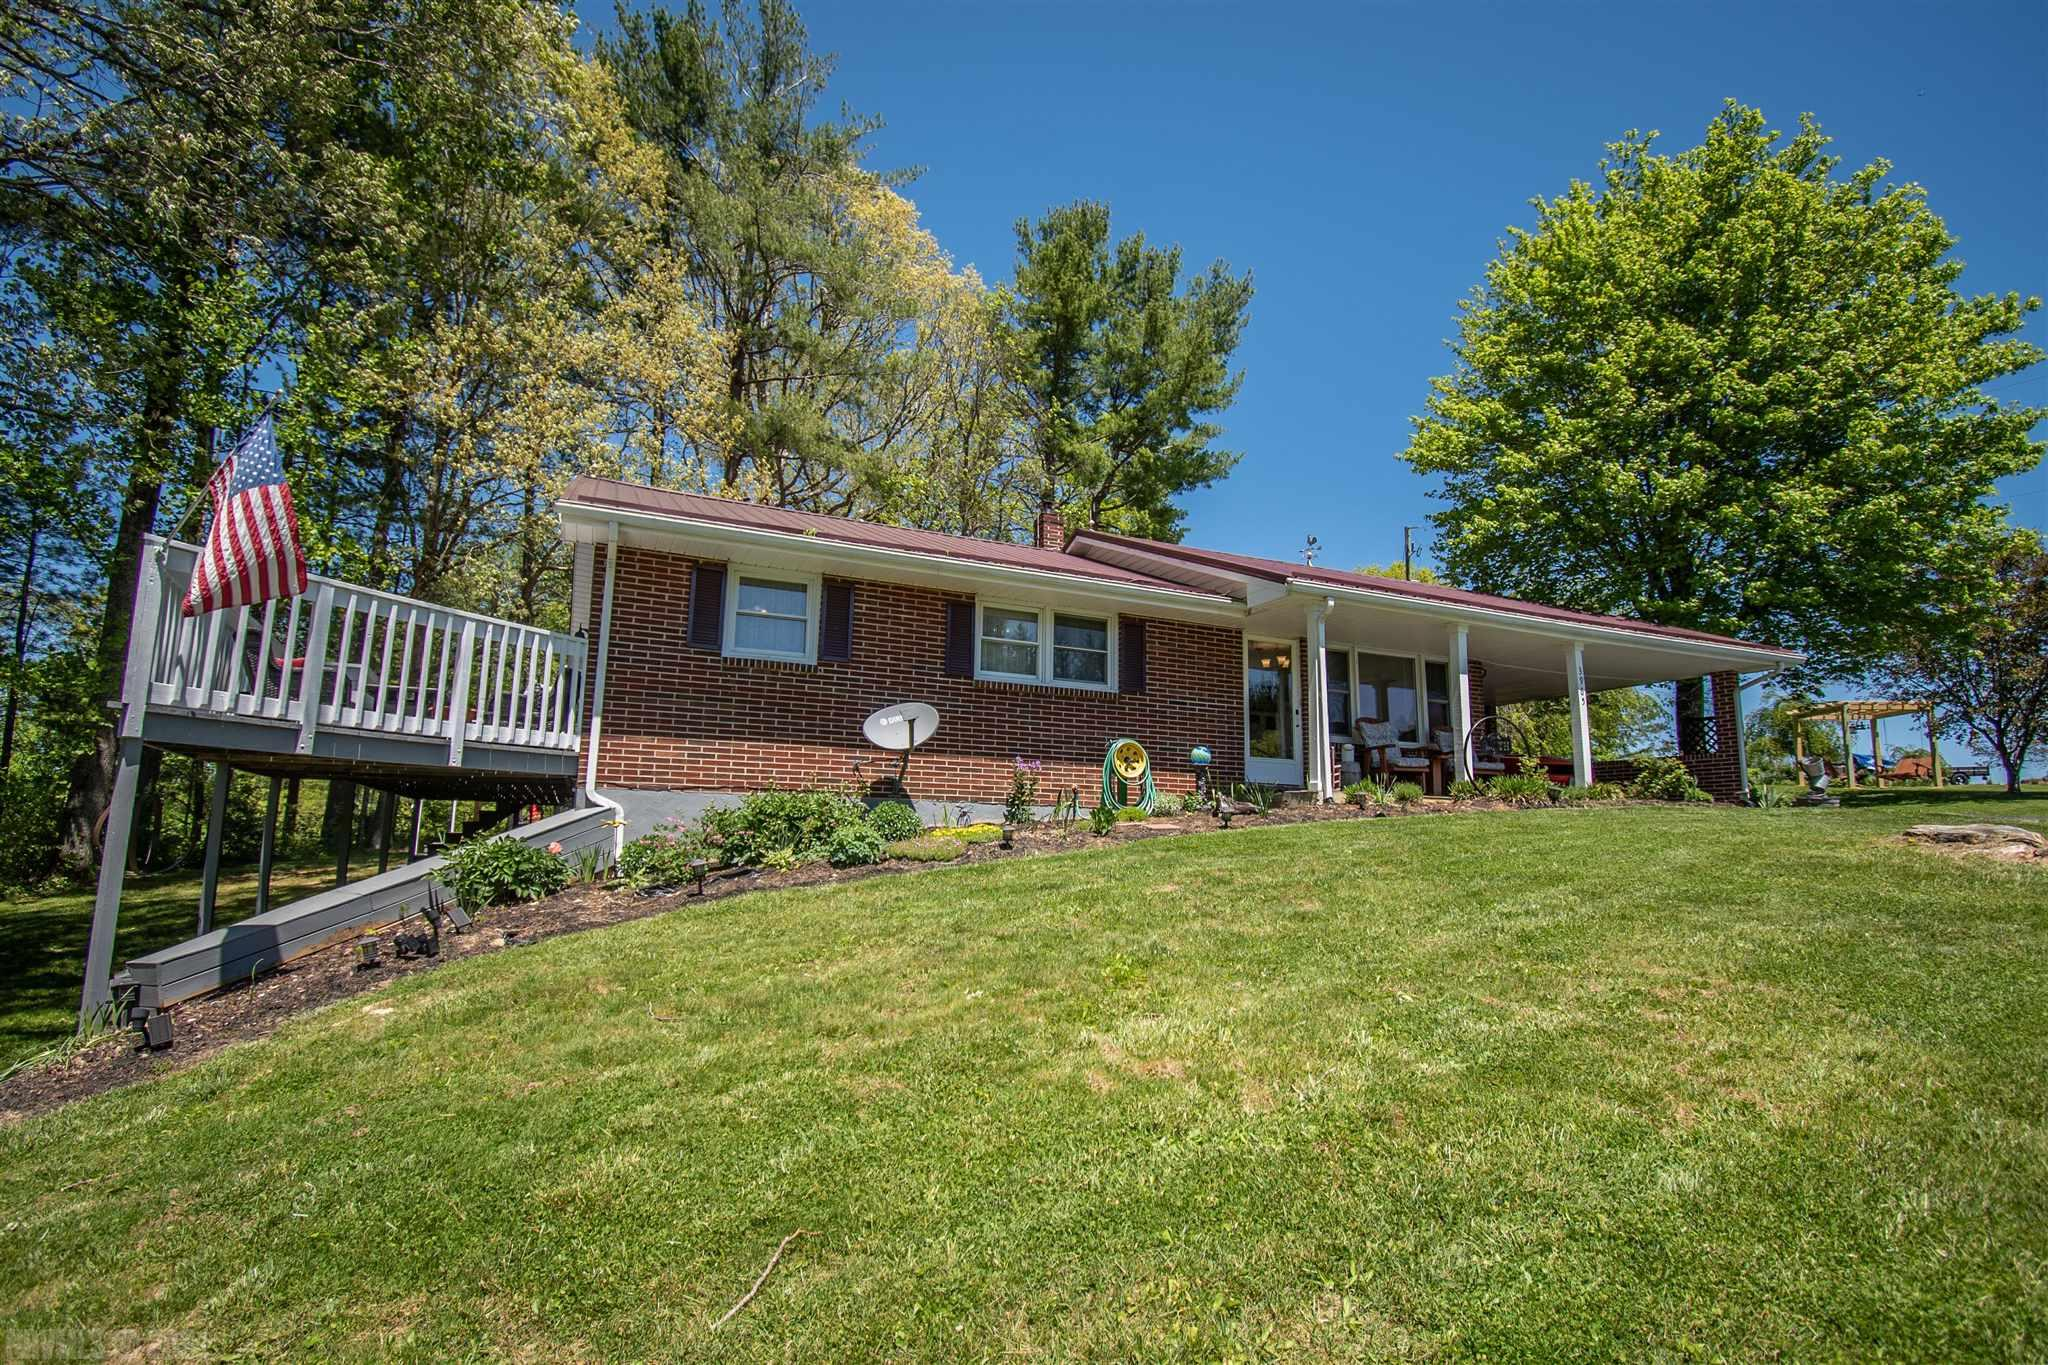 Beautifully remodeled brick ranch on a private .83 acre lot conveniently located between Christiansburg and Floyd.    Many recent improvements include a whole new kitchen, cabinets, stainless appliances, new countertops. There is a  new HVAC, hotwater heater,  new flooring and paint, updated lights.  The sunroom off the kitchen is delightful.   Metal roof and replacement windows.     The basement has plenty of storage and hugh family room.